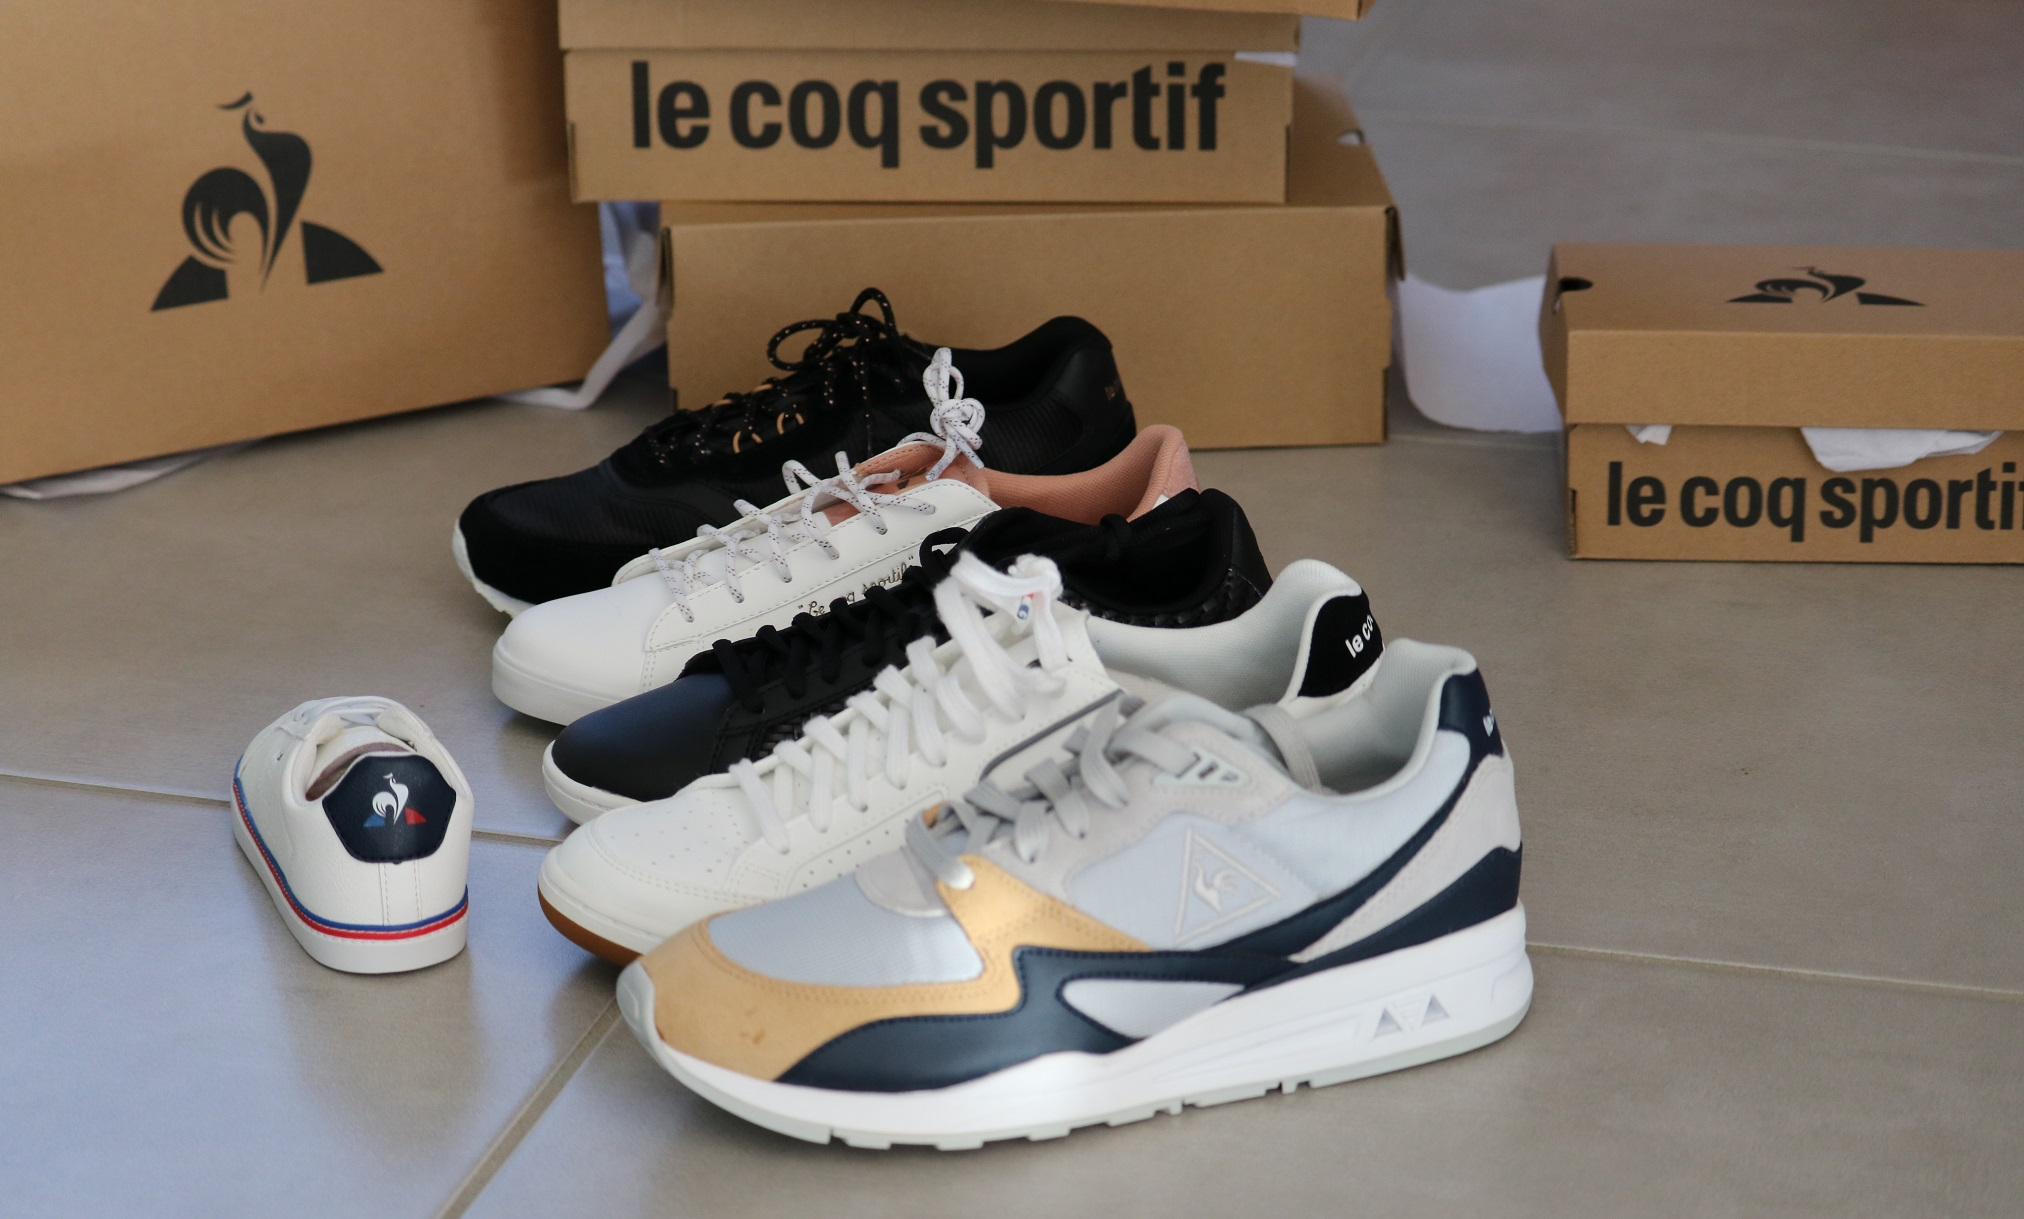 Le Coq Sportif Sneakers | LOOKBOOK